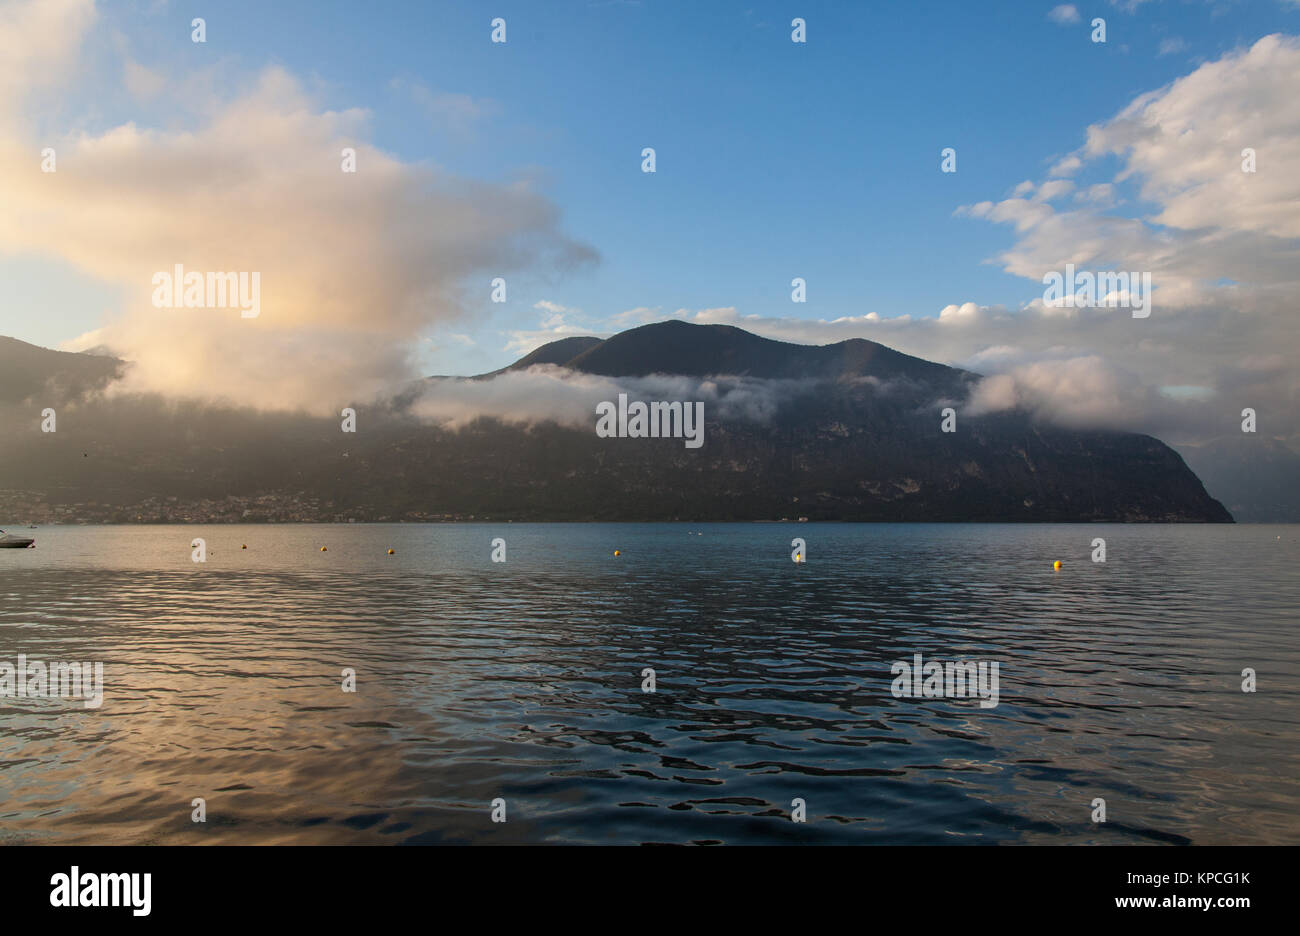 Lake Iseo, Italy. Picturesque dusk view of Lake Iseo, with the Predore peninsula in the background. The scene was - Stock Image